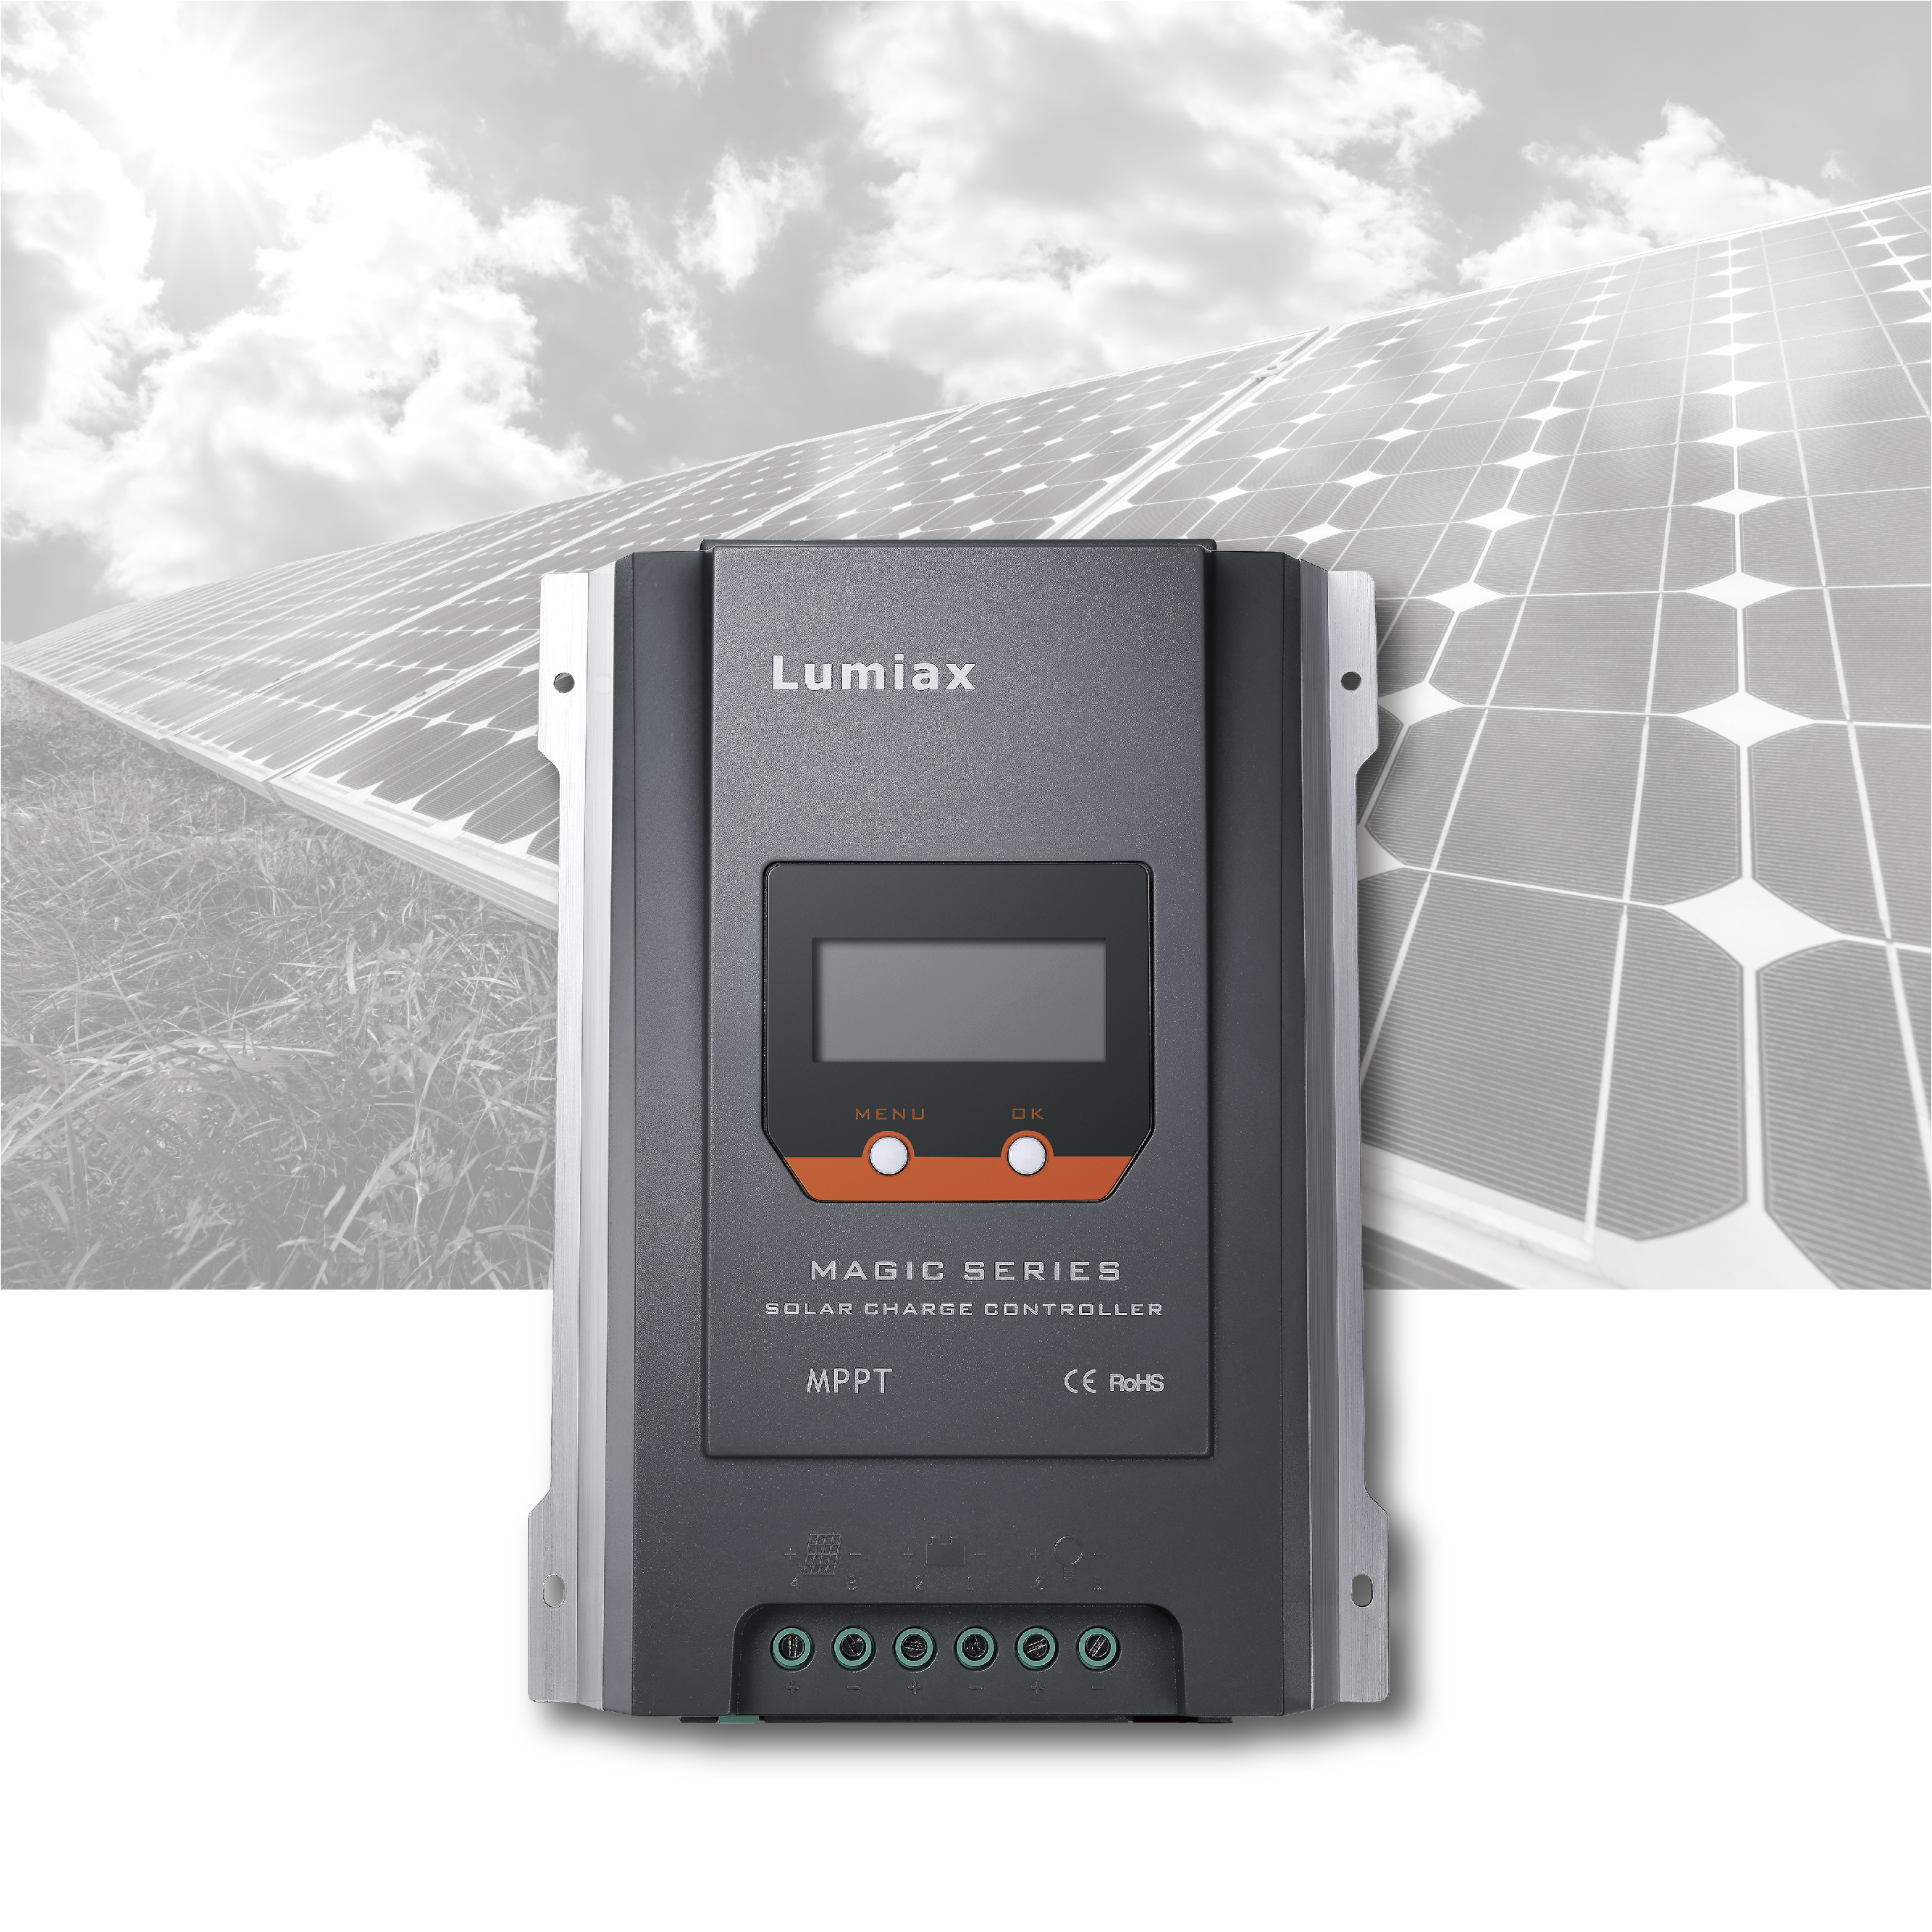 Lumiax 40A 12V 24V mppt solar <strong>charge</strong> <strong>controller</strong> 24v bluetooth lcd display